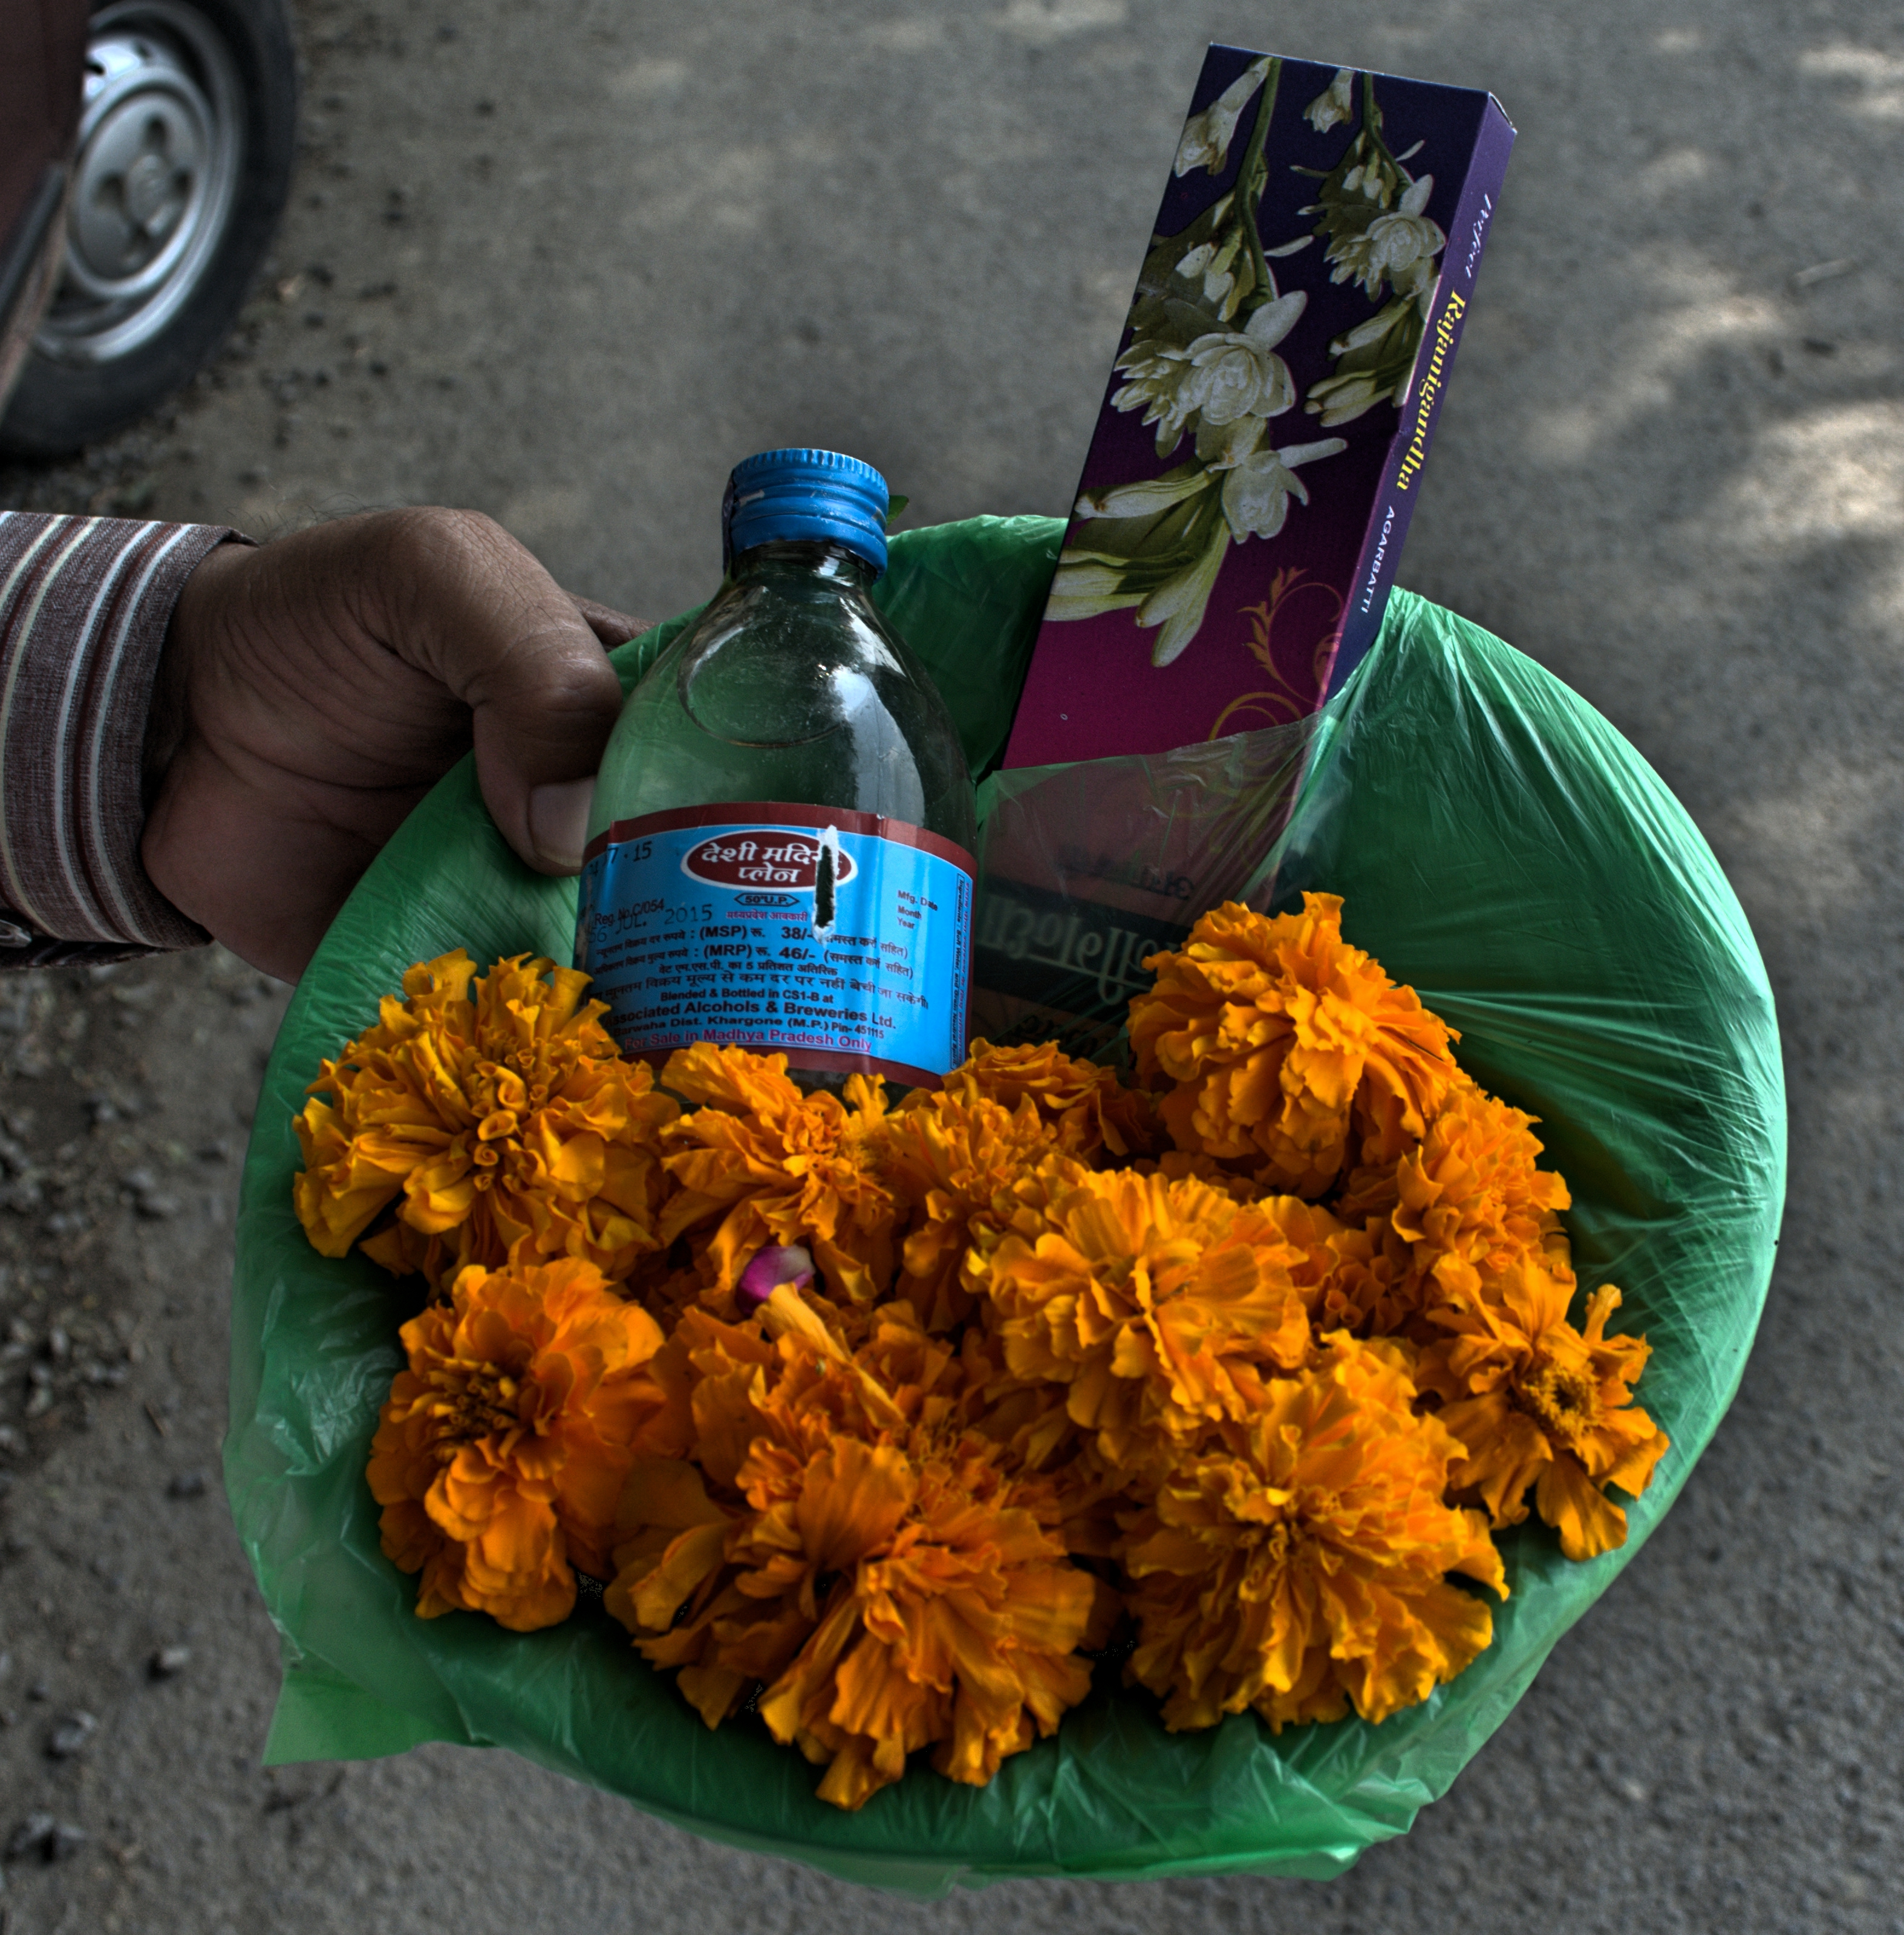 A typical basket of offerings, containing desi daru (country liquor), a pack of incense sticks and marigold flowers